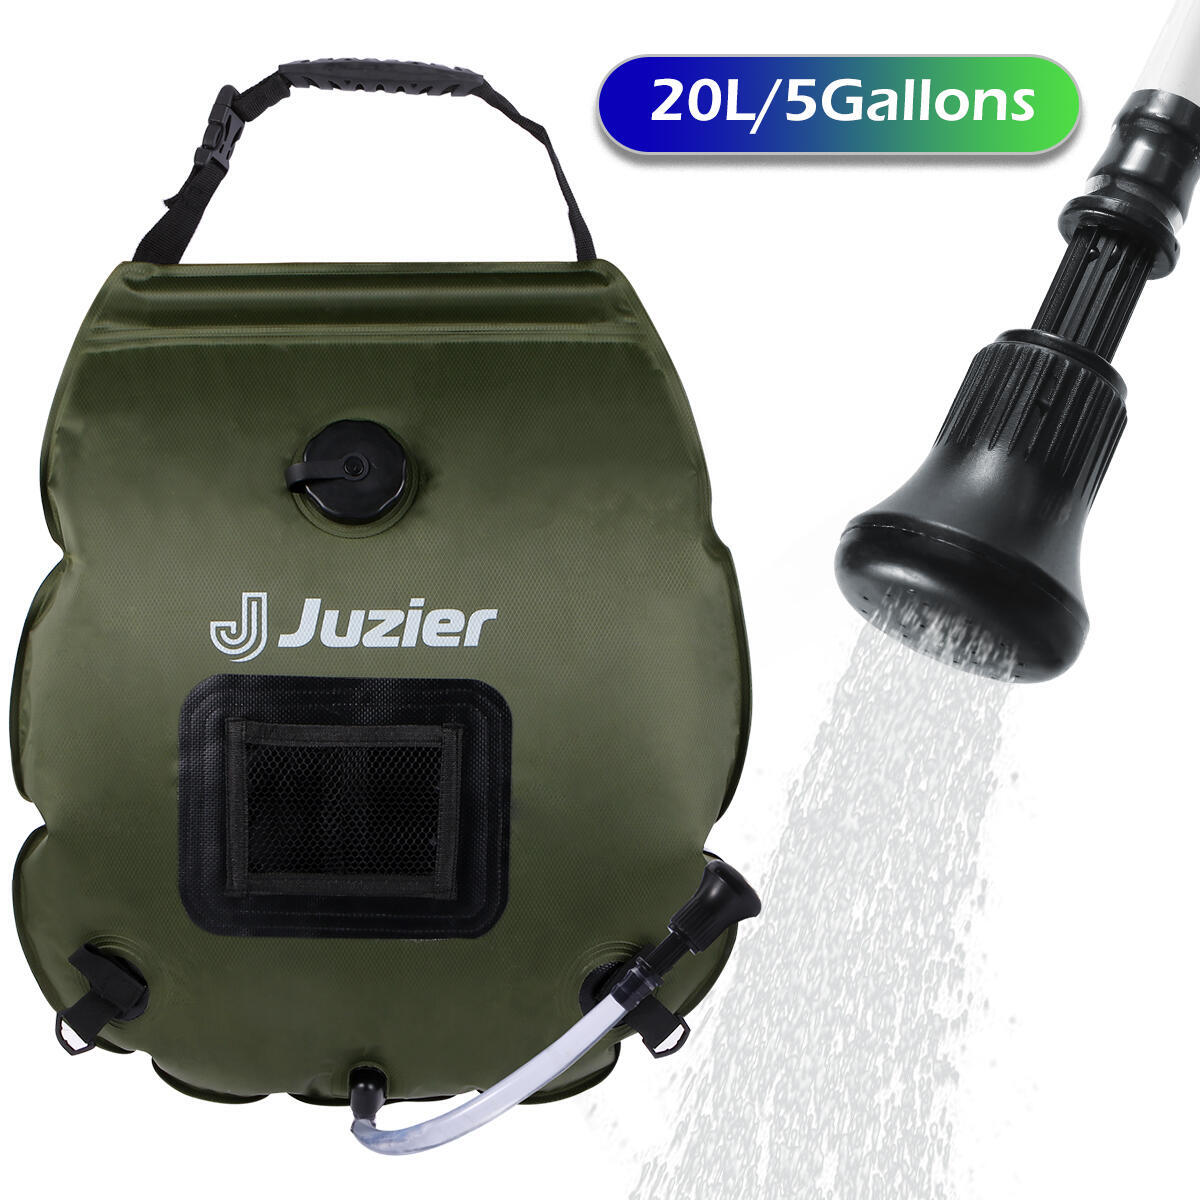 Juzier Portable Camping Shower Bag 5 Gallons/20 L Army Green Summer Solar Shower Bag for Camping with Removable Hose and On-Off Switchable Shower Head for Camping Beach Swimming Outdoor Traveling